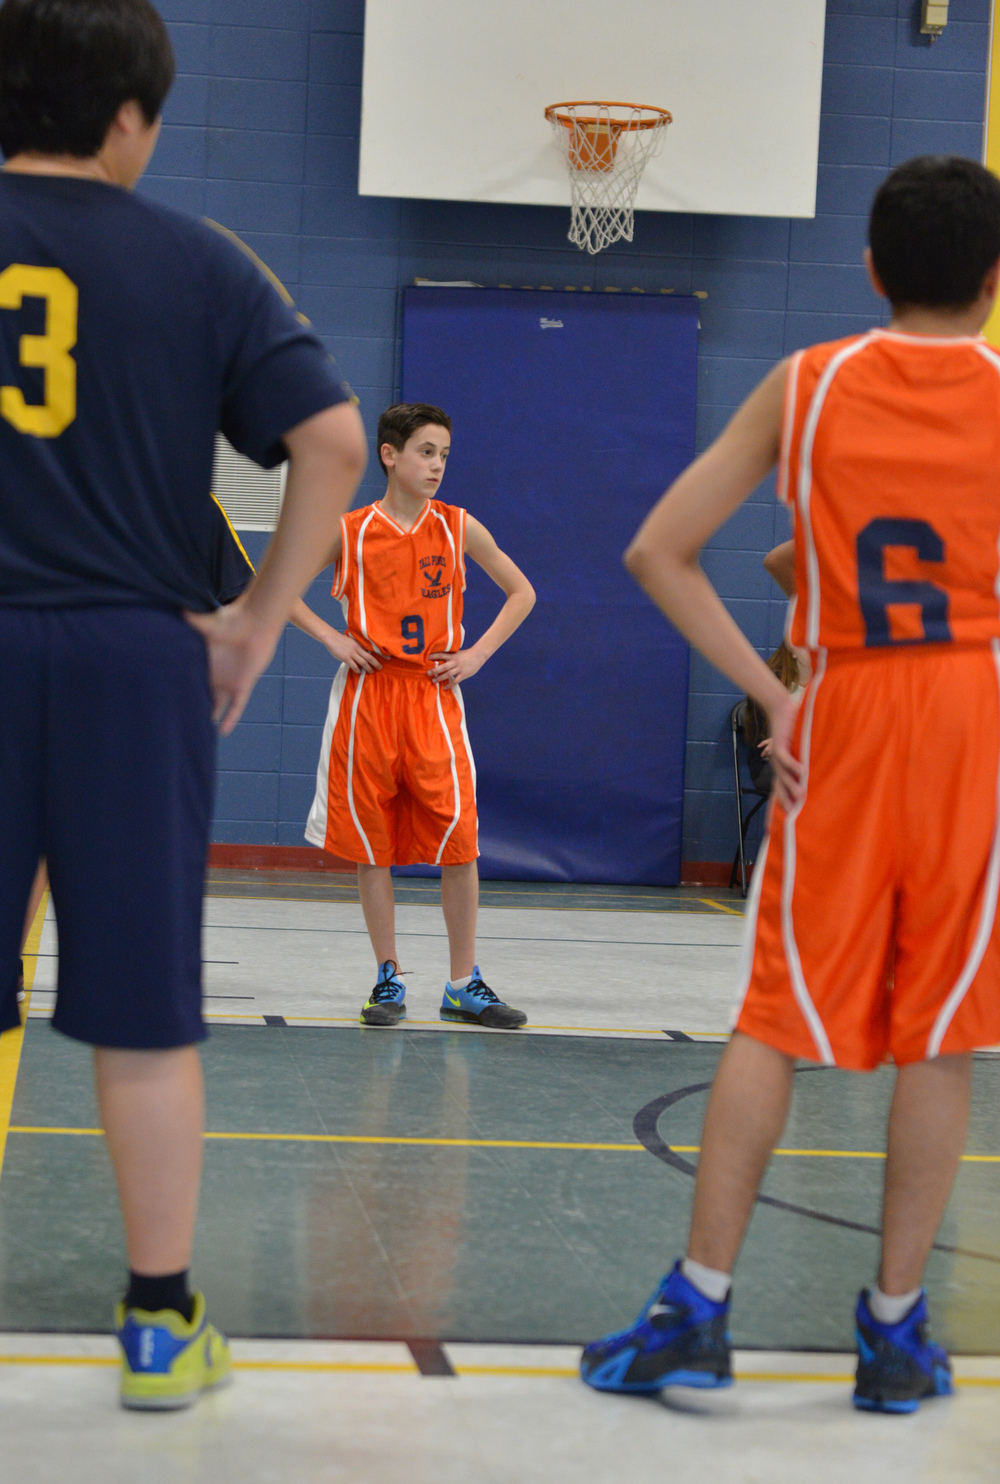 U-14 Boys Basketball  (21 of 25).jpg